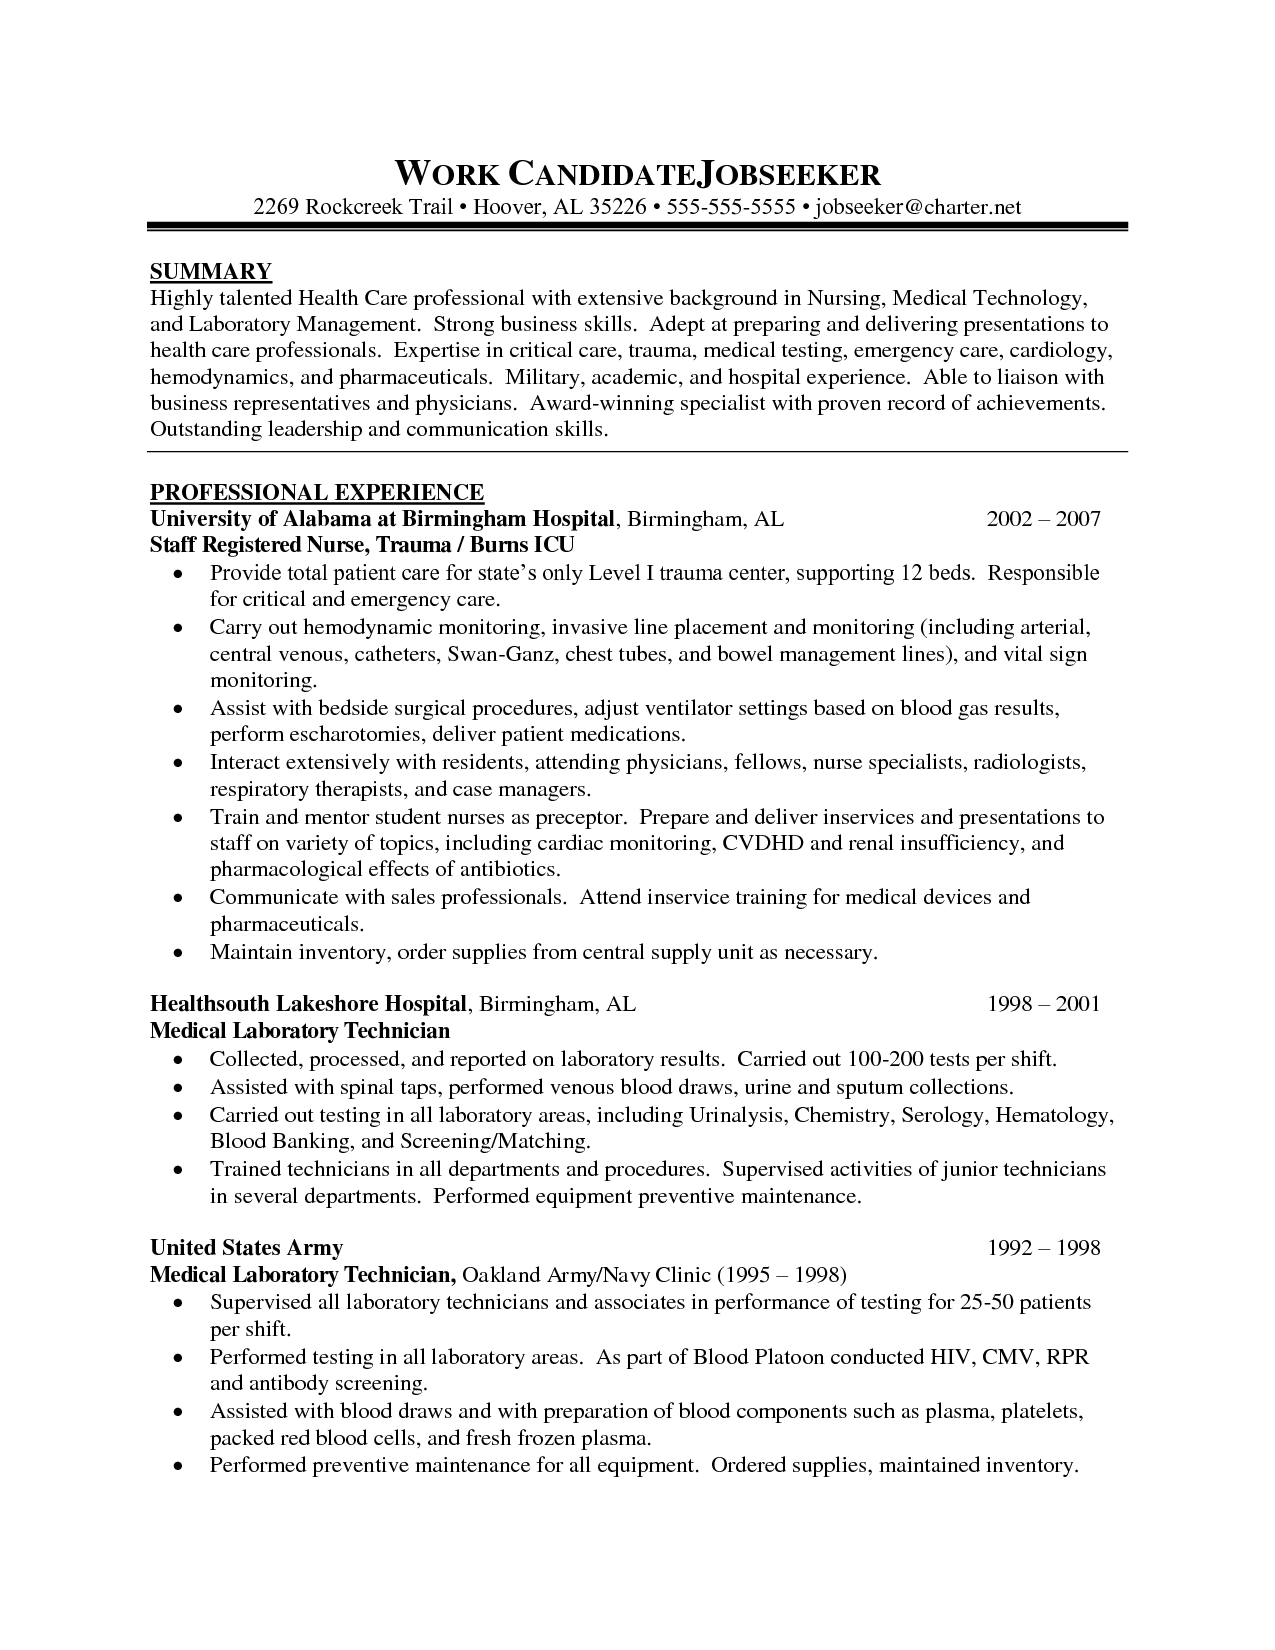 Cardiac Nurse Practitioner Sample Resume Unique Resume Examples Nursing Student  Pinterest  Professional Resume .